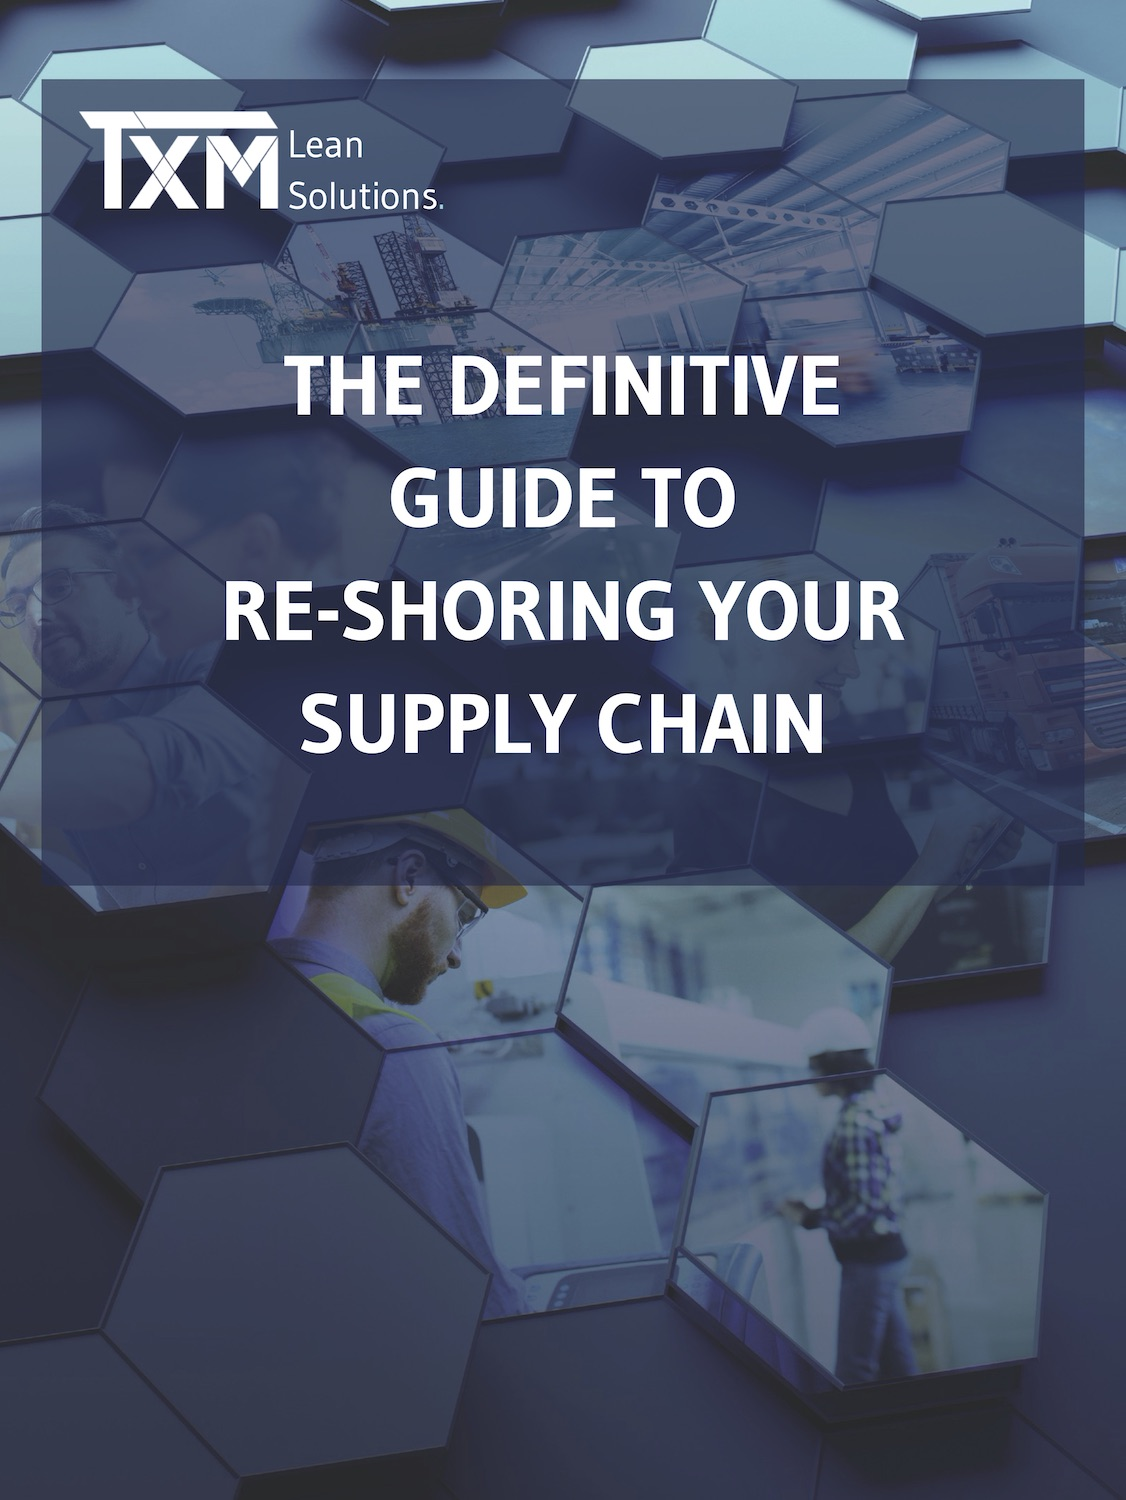 THE DEFINITIVE GUIDE TO RE-SHORING YOUR SUPPLY CHAIN